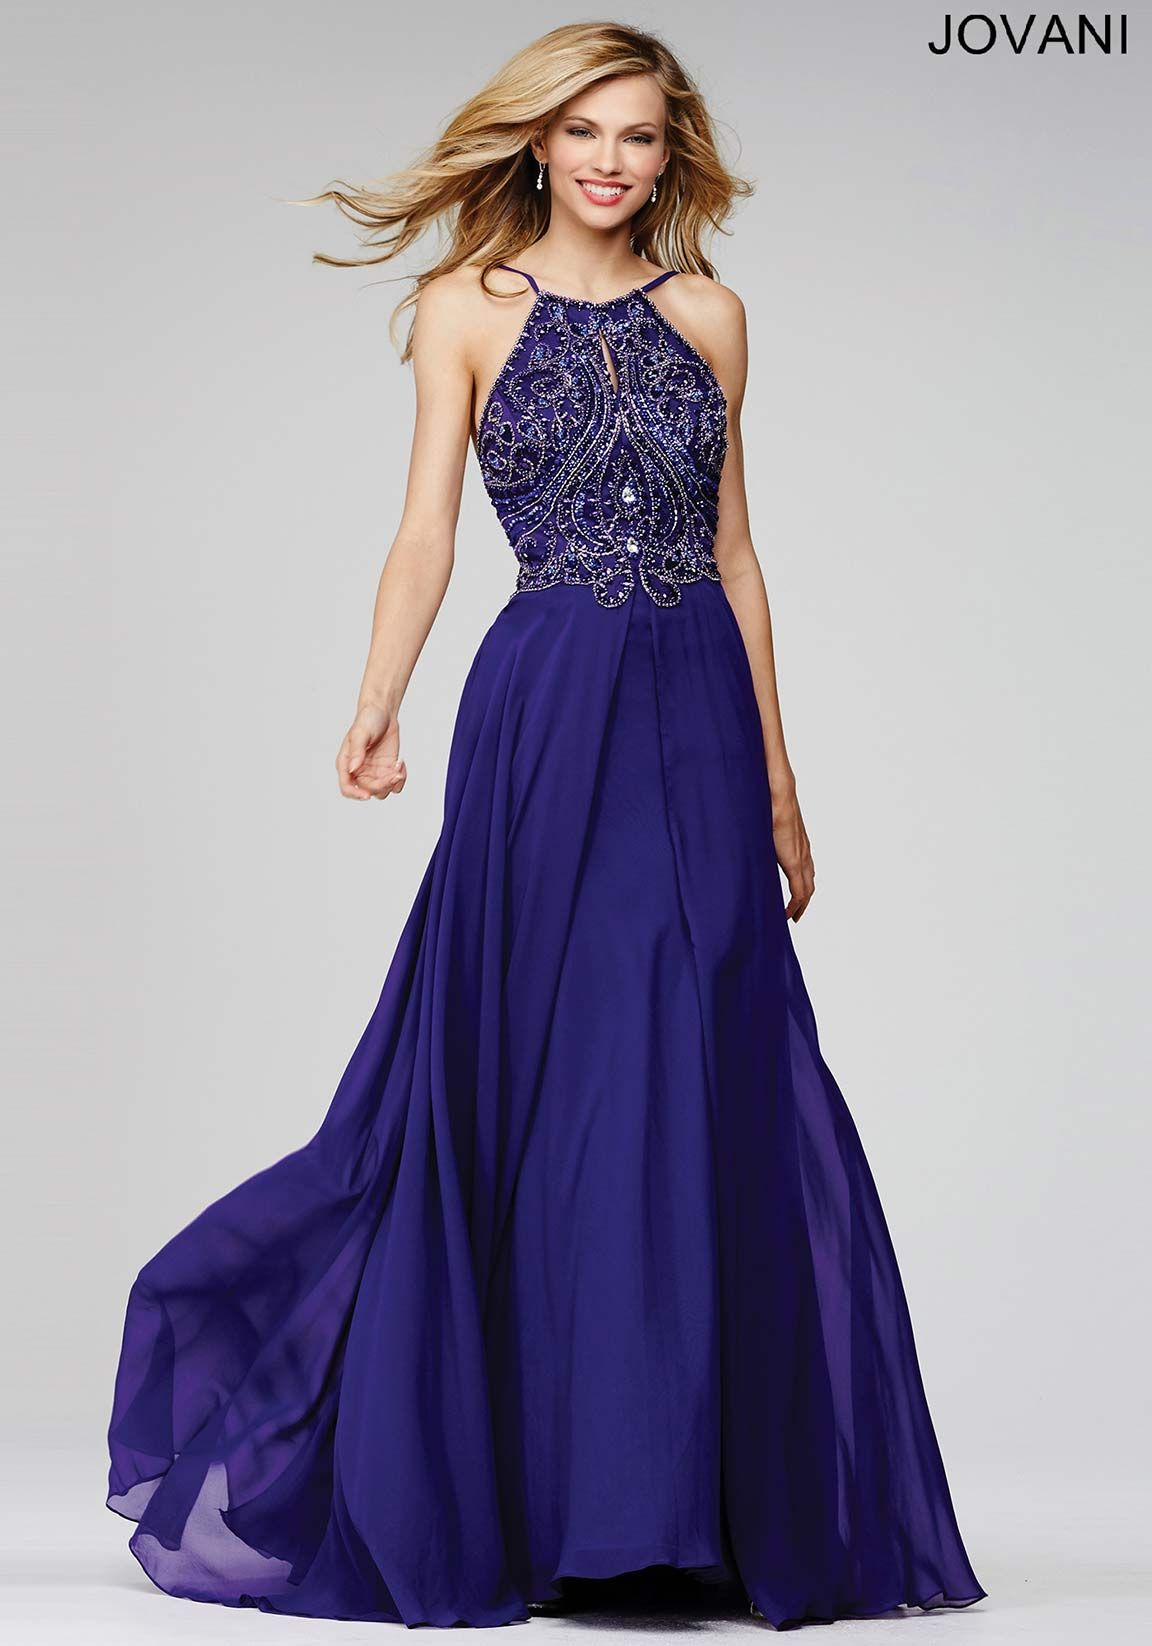 prom dresses - Google Search | Homecoming And Prom Dresses / Outfits ...